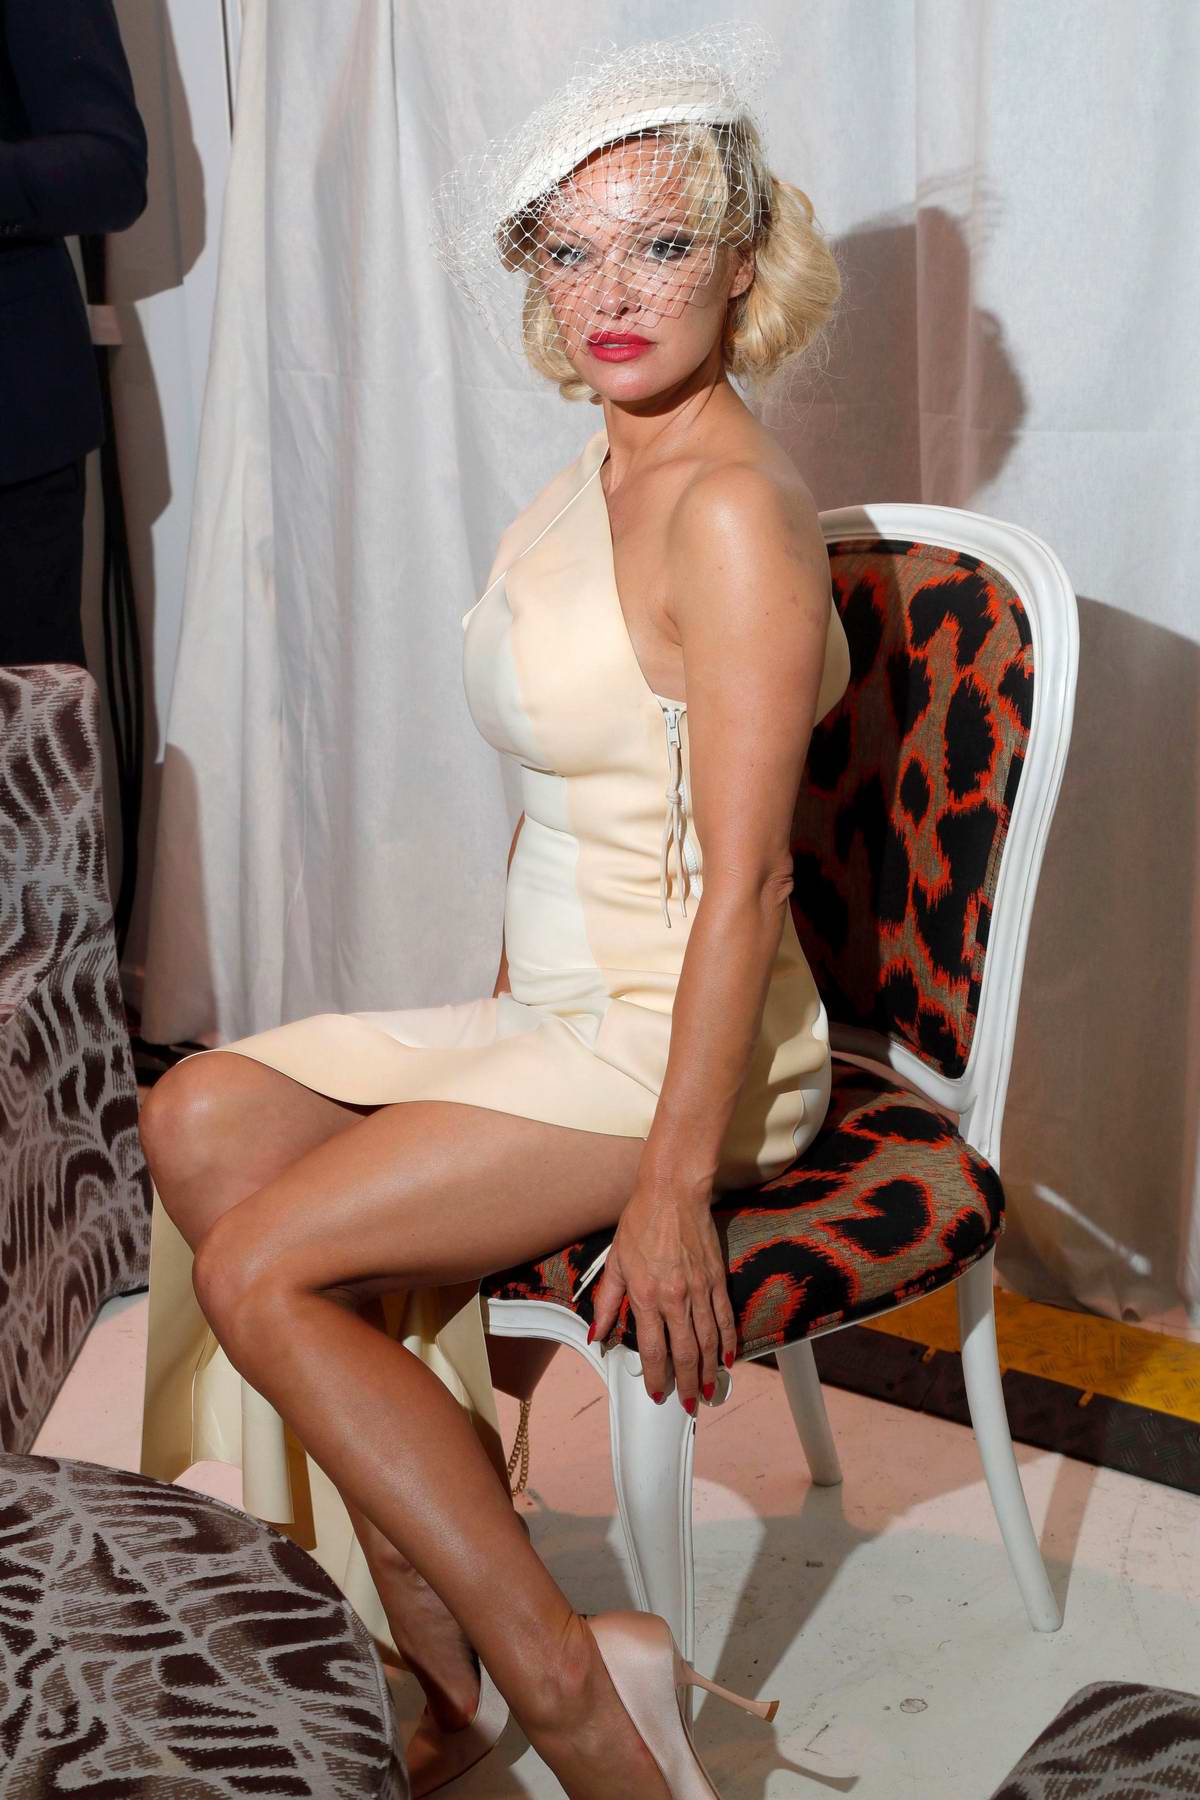 Pamela Anderson attends Andreas Kronthaler for Vivienne Westwood Womenswear SS 2020 Show during Paris Fashion Week in Paris, France